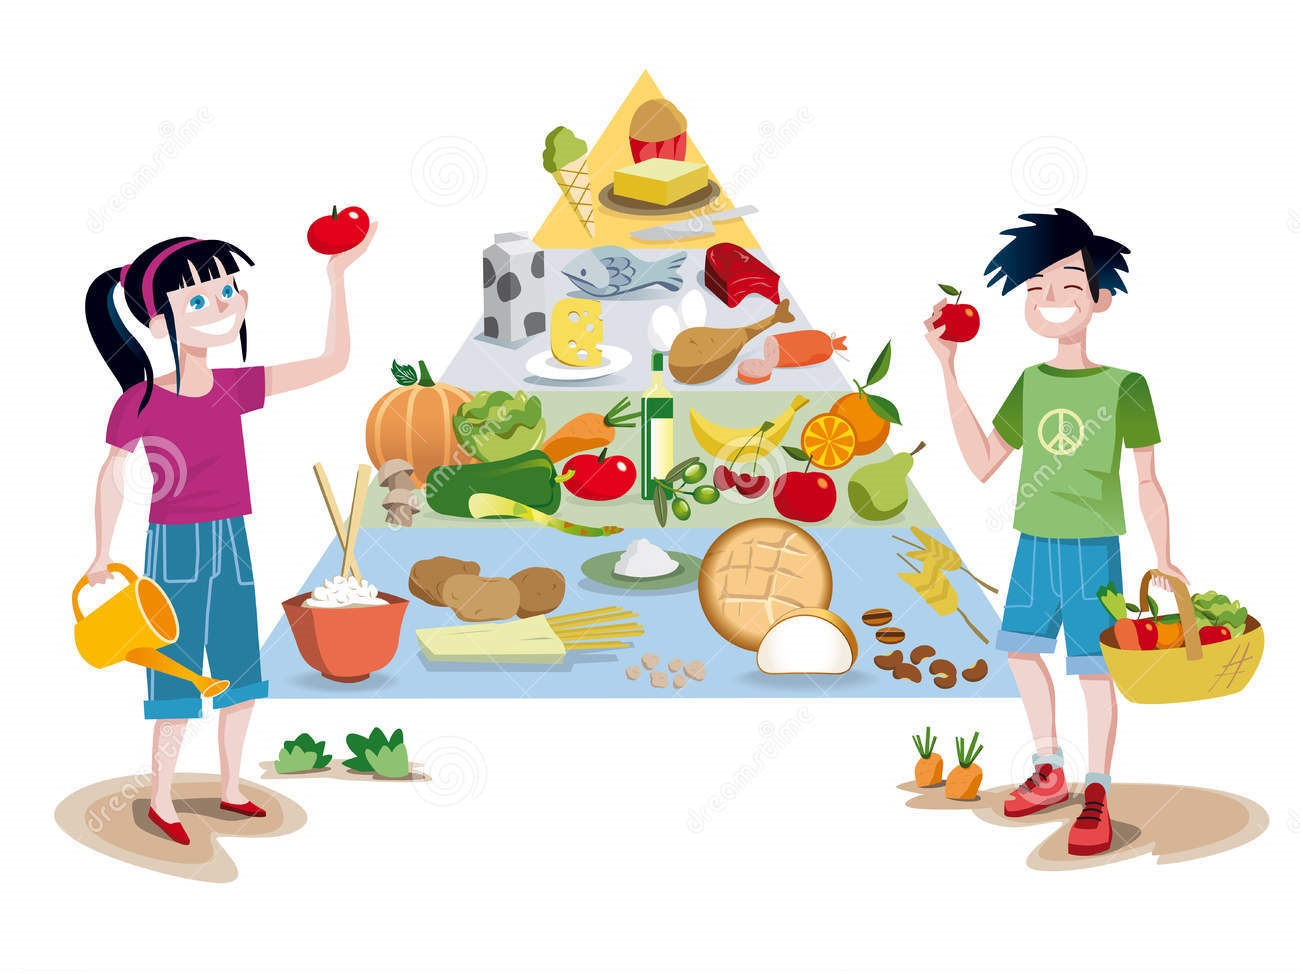 Guide to Helping Your Kids Develop Healthy Eating Habits